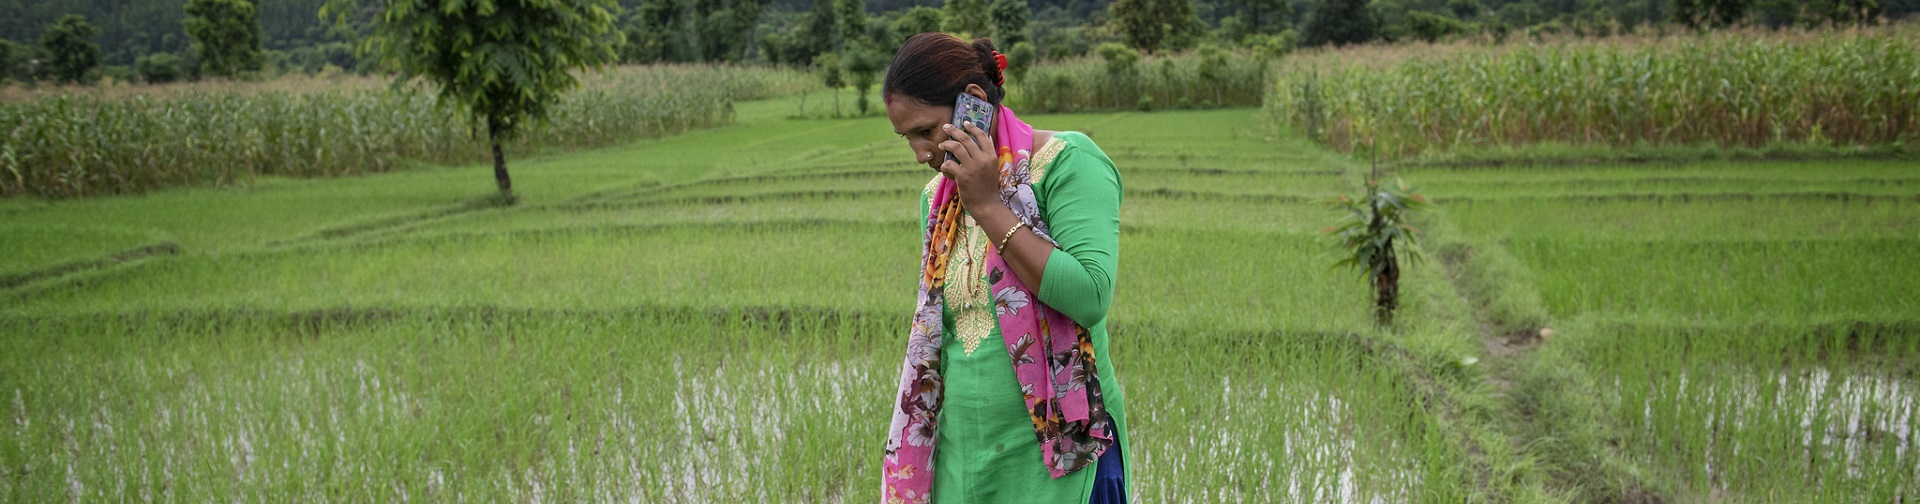 Feminization of Agriculture: Building evidence to debunk myths on current challenges and opportunities (Webinar #2)